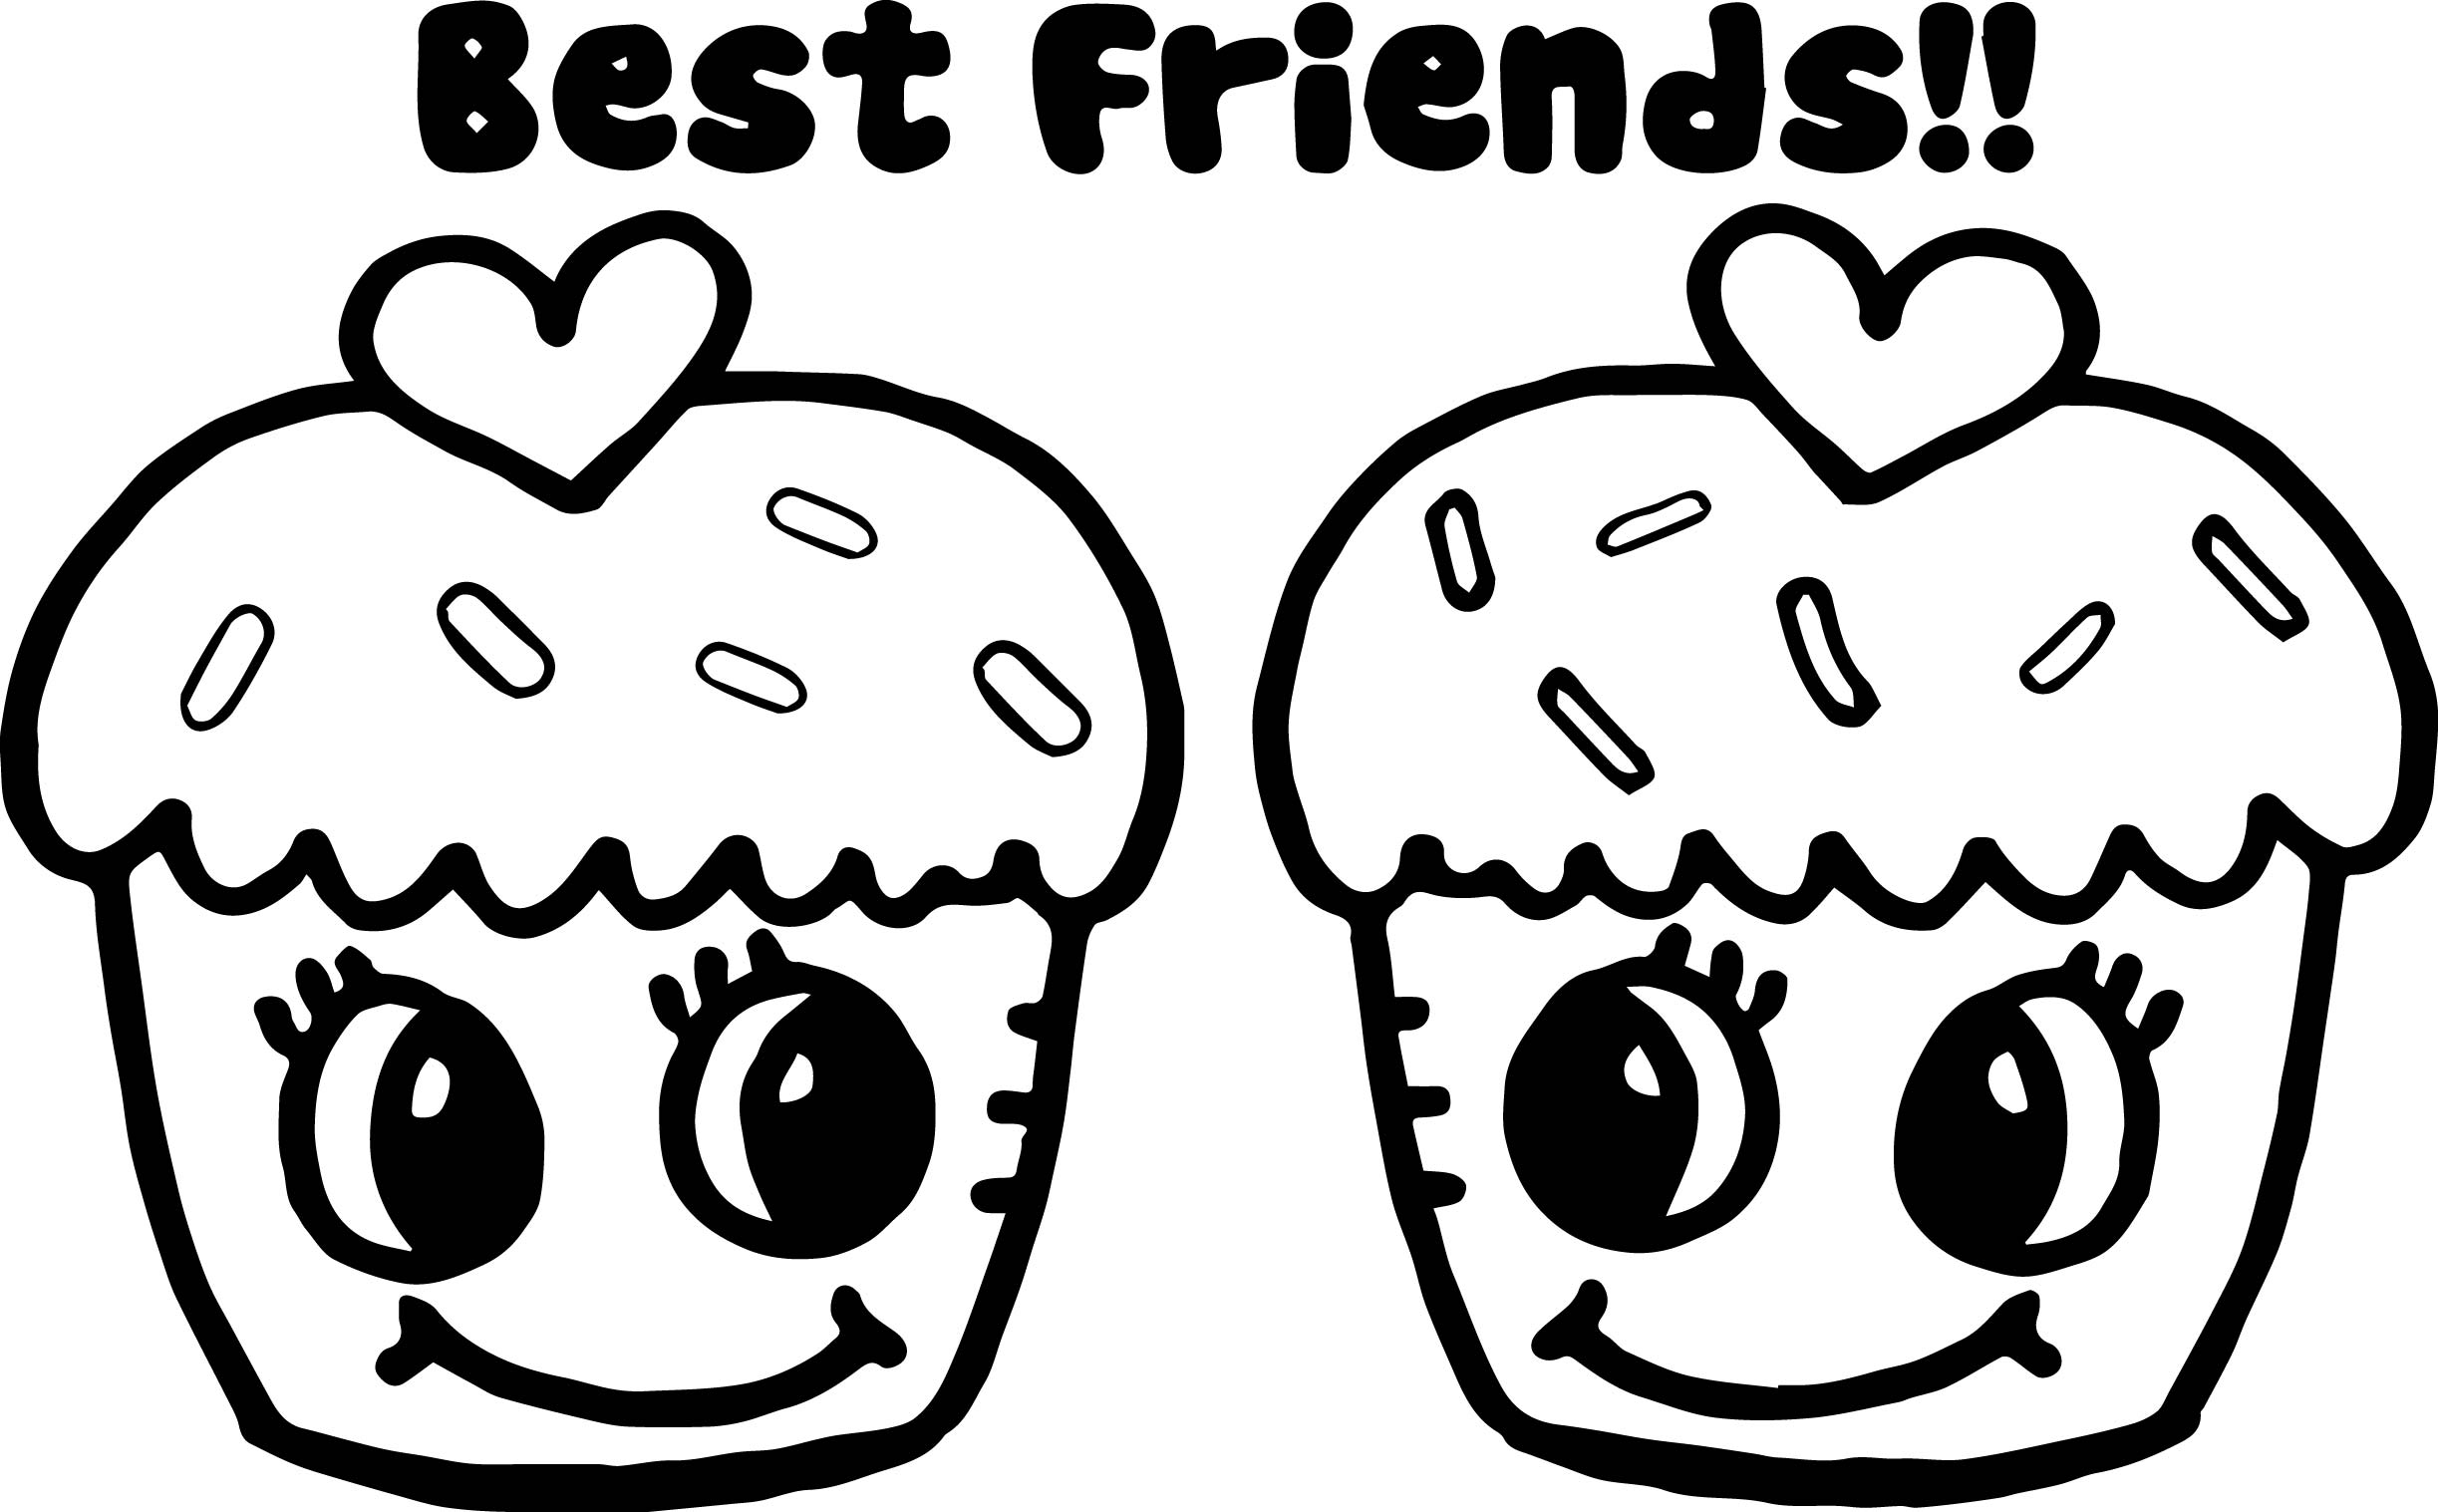 coloring pages about friendship - cupcakes best friends coloring page